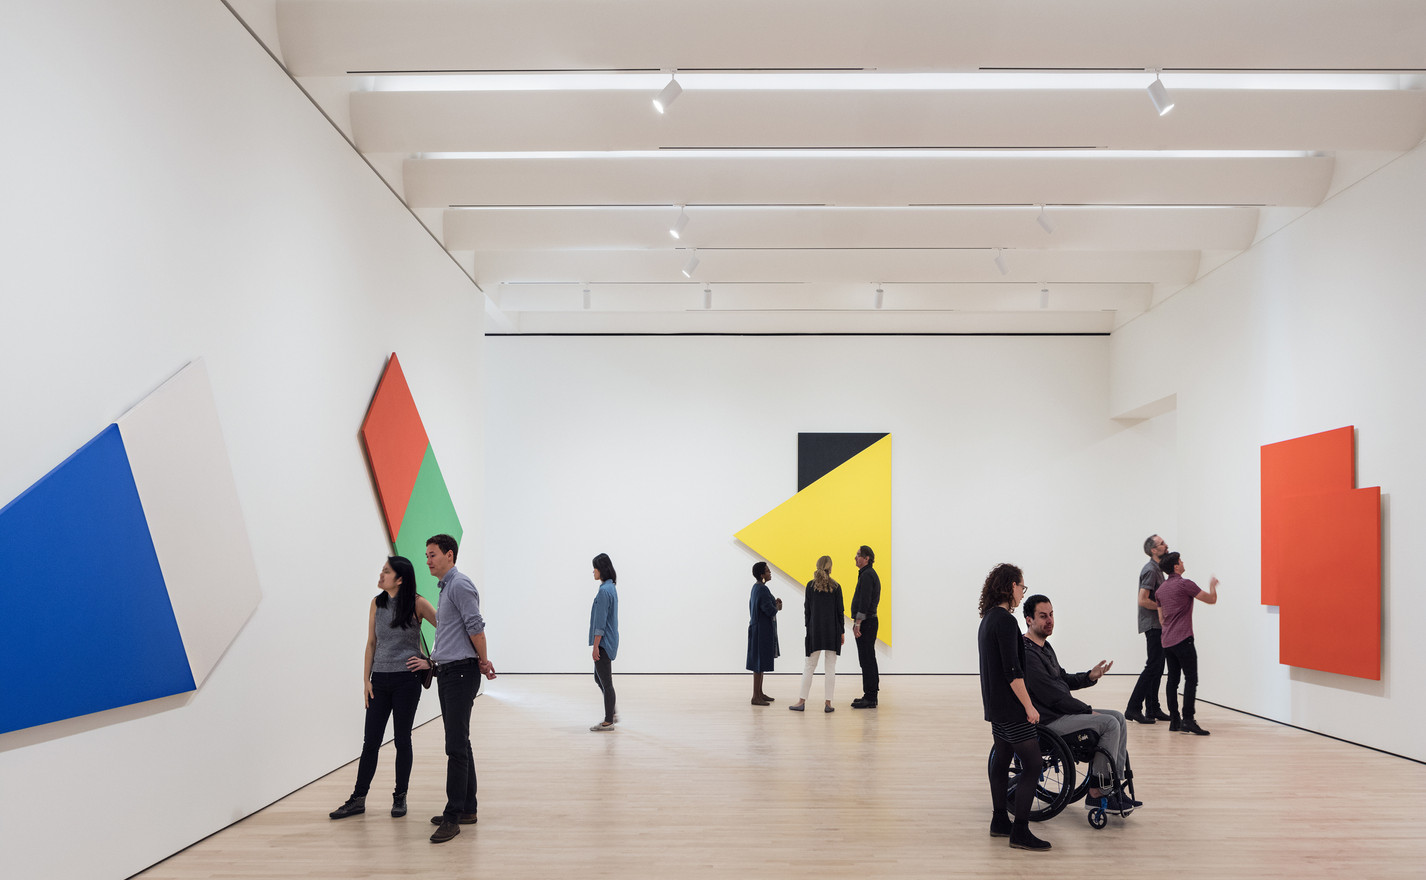 13._Approaching_American_Abstraction_The_Fisher_Collection_exhibition__photo_©_Iwan_Baan__courtesy_SFMOMA